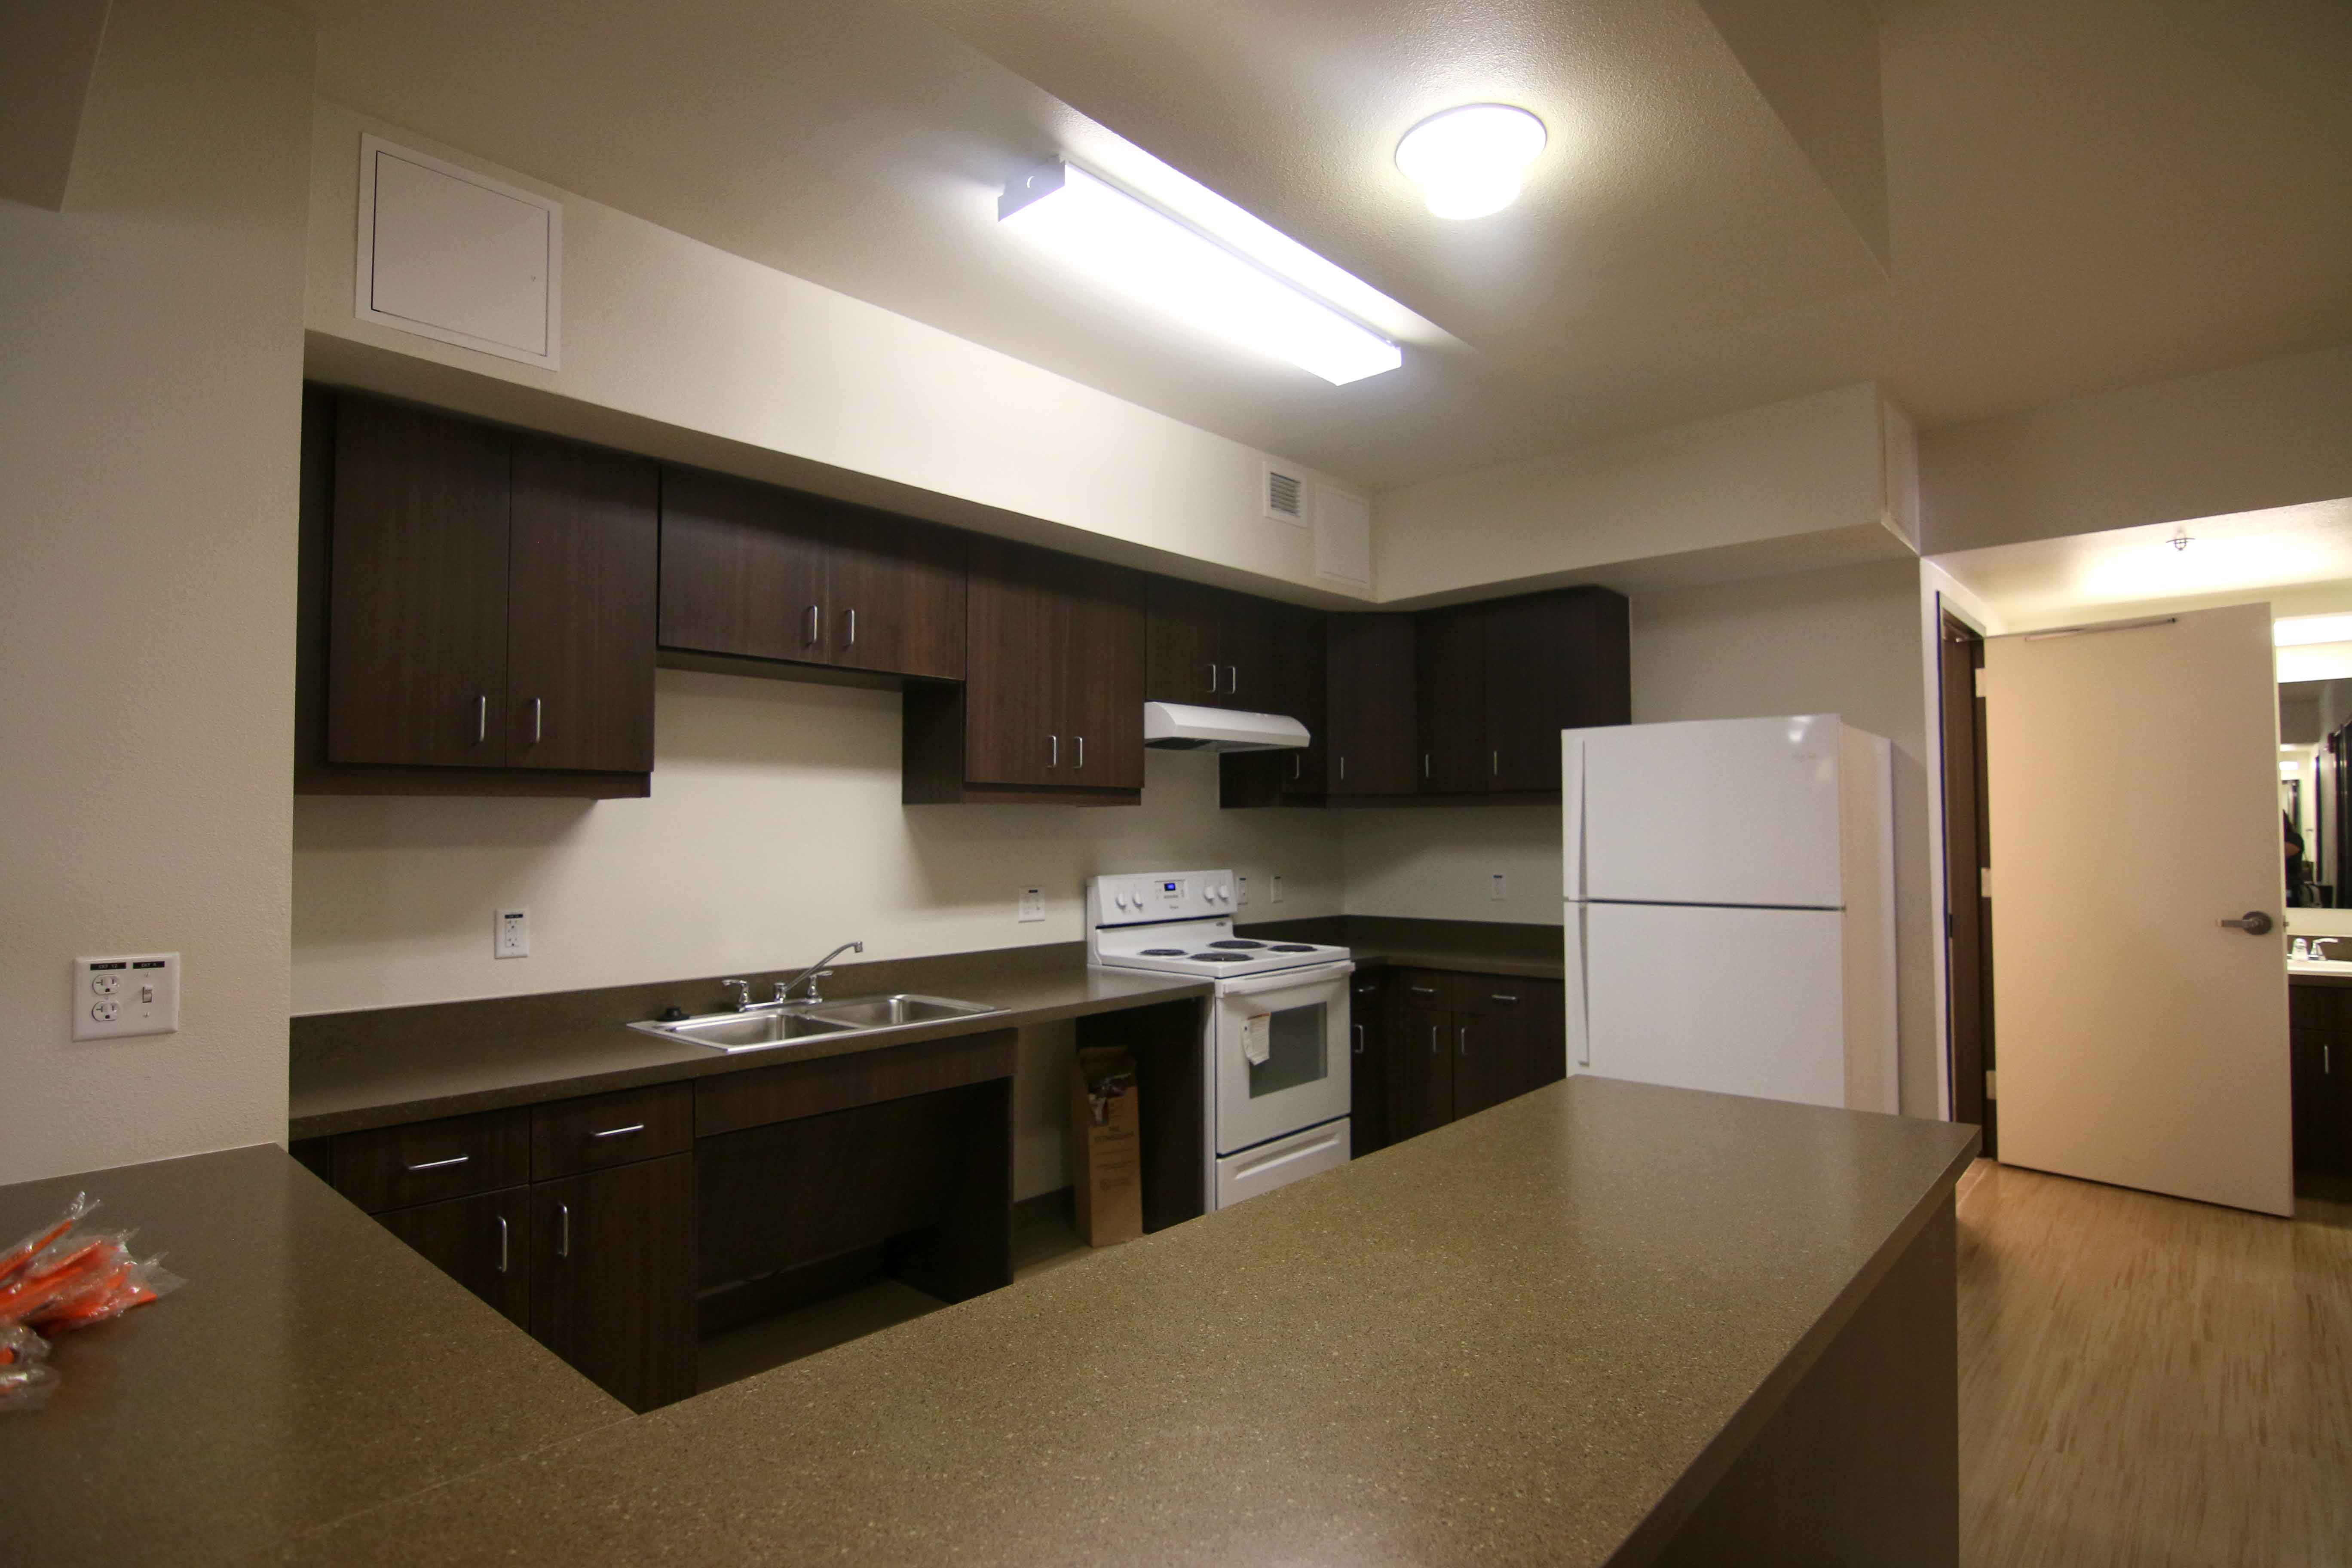 A kitchen of one of the dorm rooms.